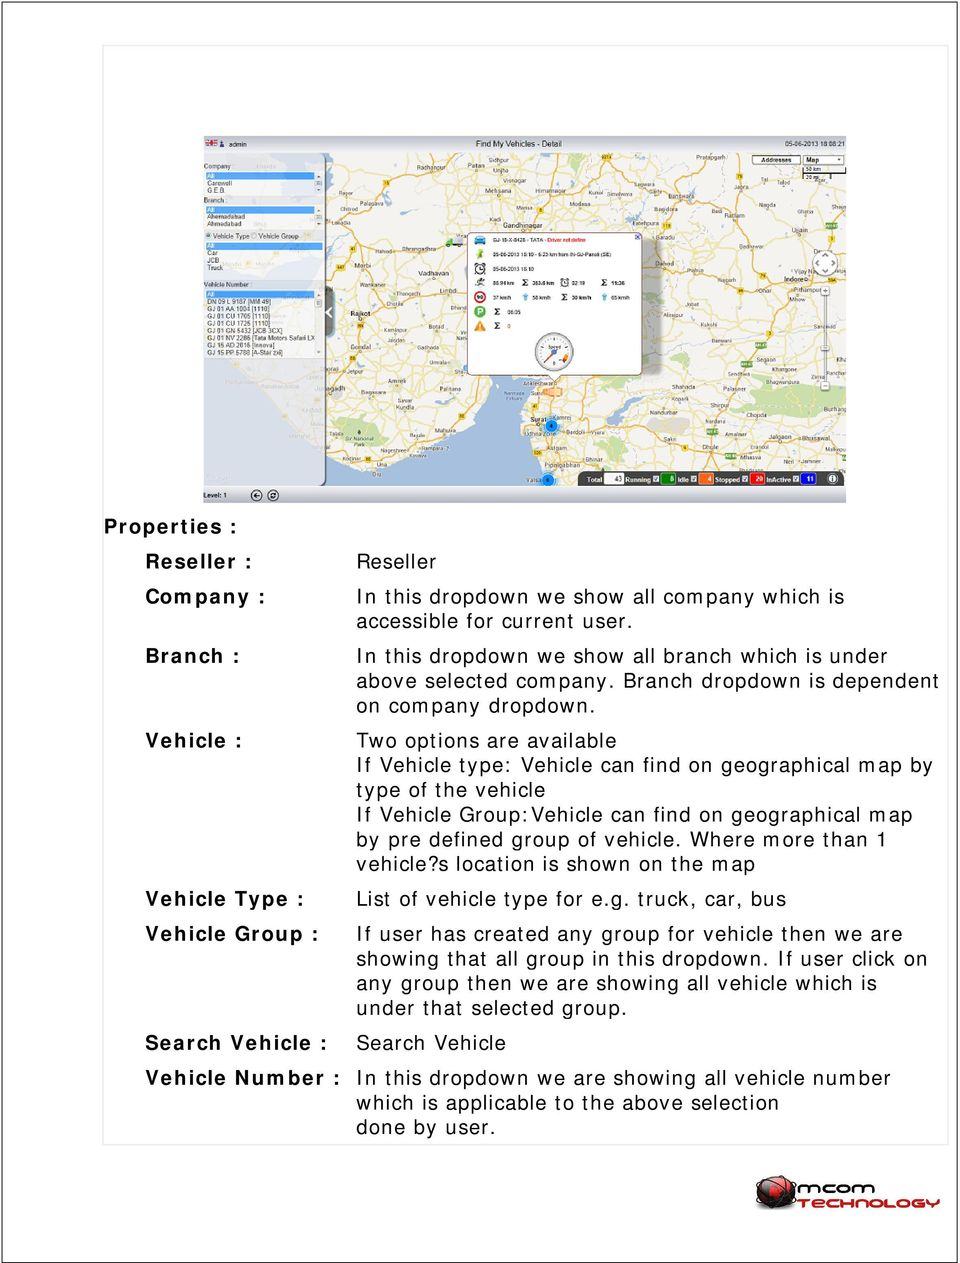 Two options are available If Vehicle type: Vehicle can find on geographical map by type of the vehicle If Vehicle Group:Vehicle can find on geographical map by pre defined group of vehicle.